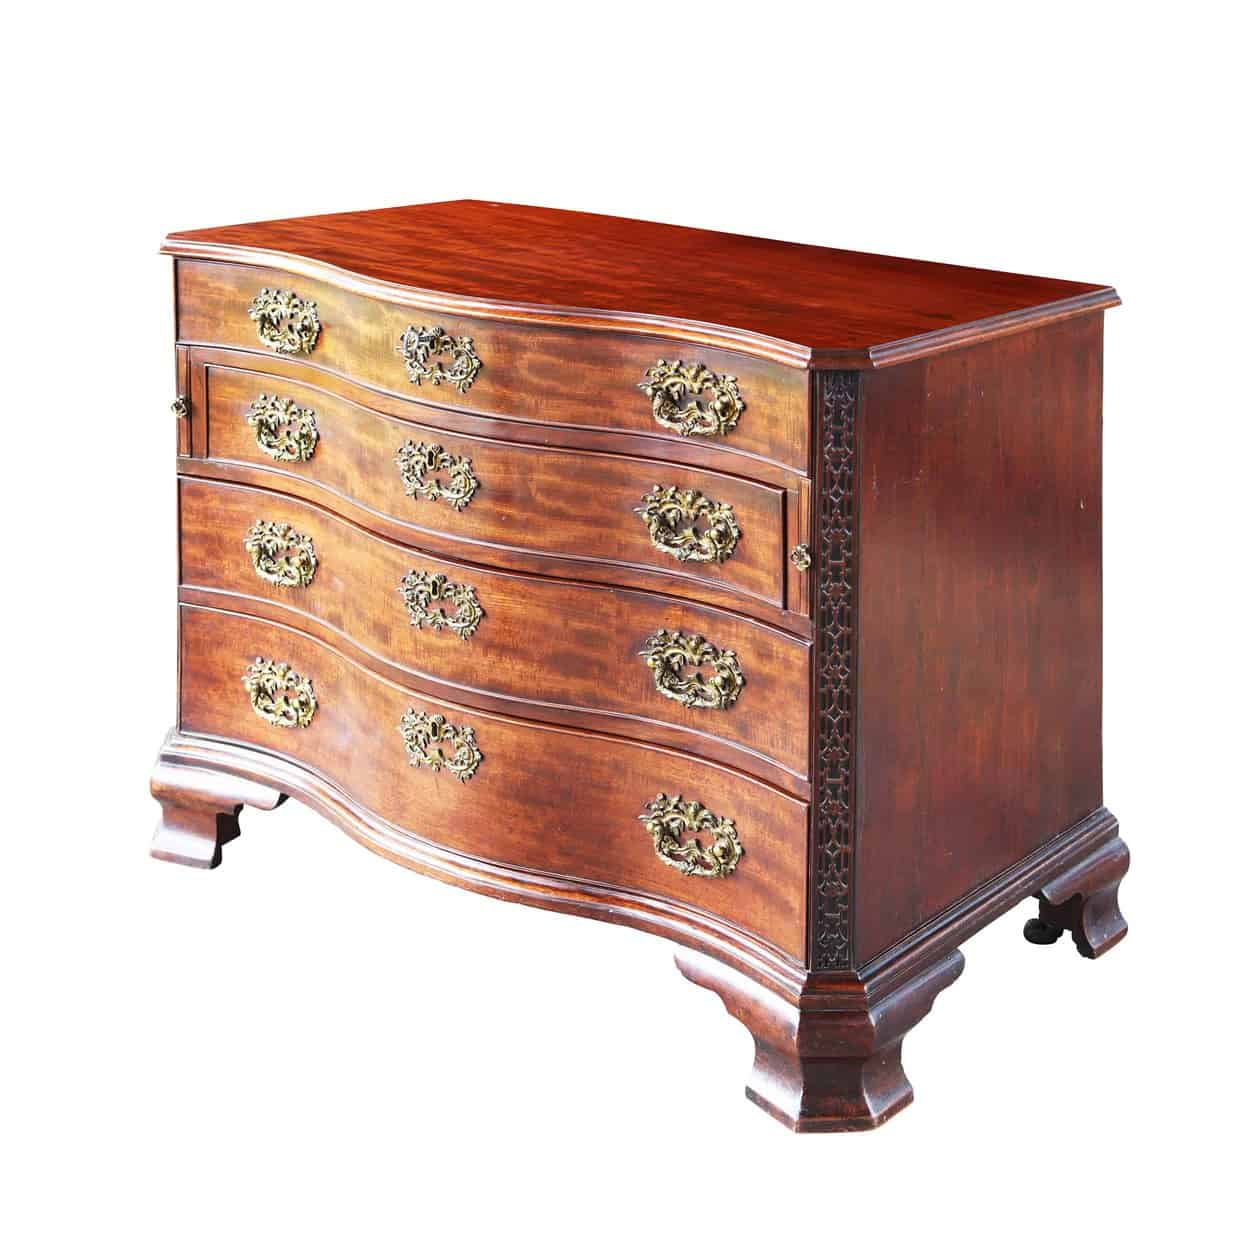 Thomas Chippendale Chest of Drawers